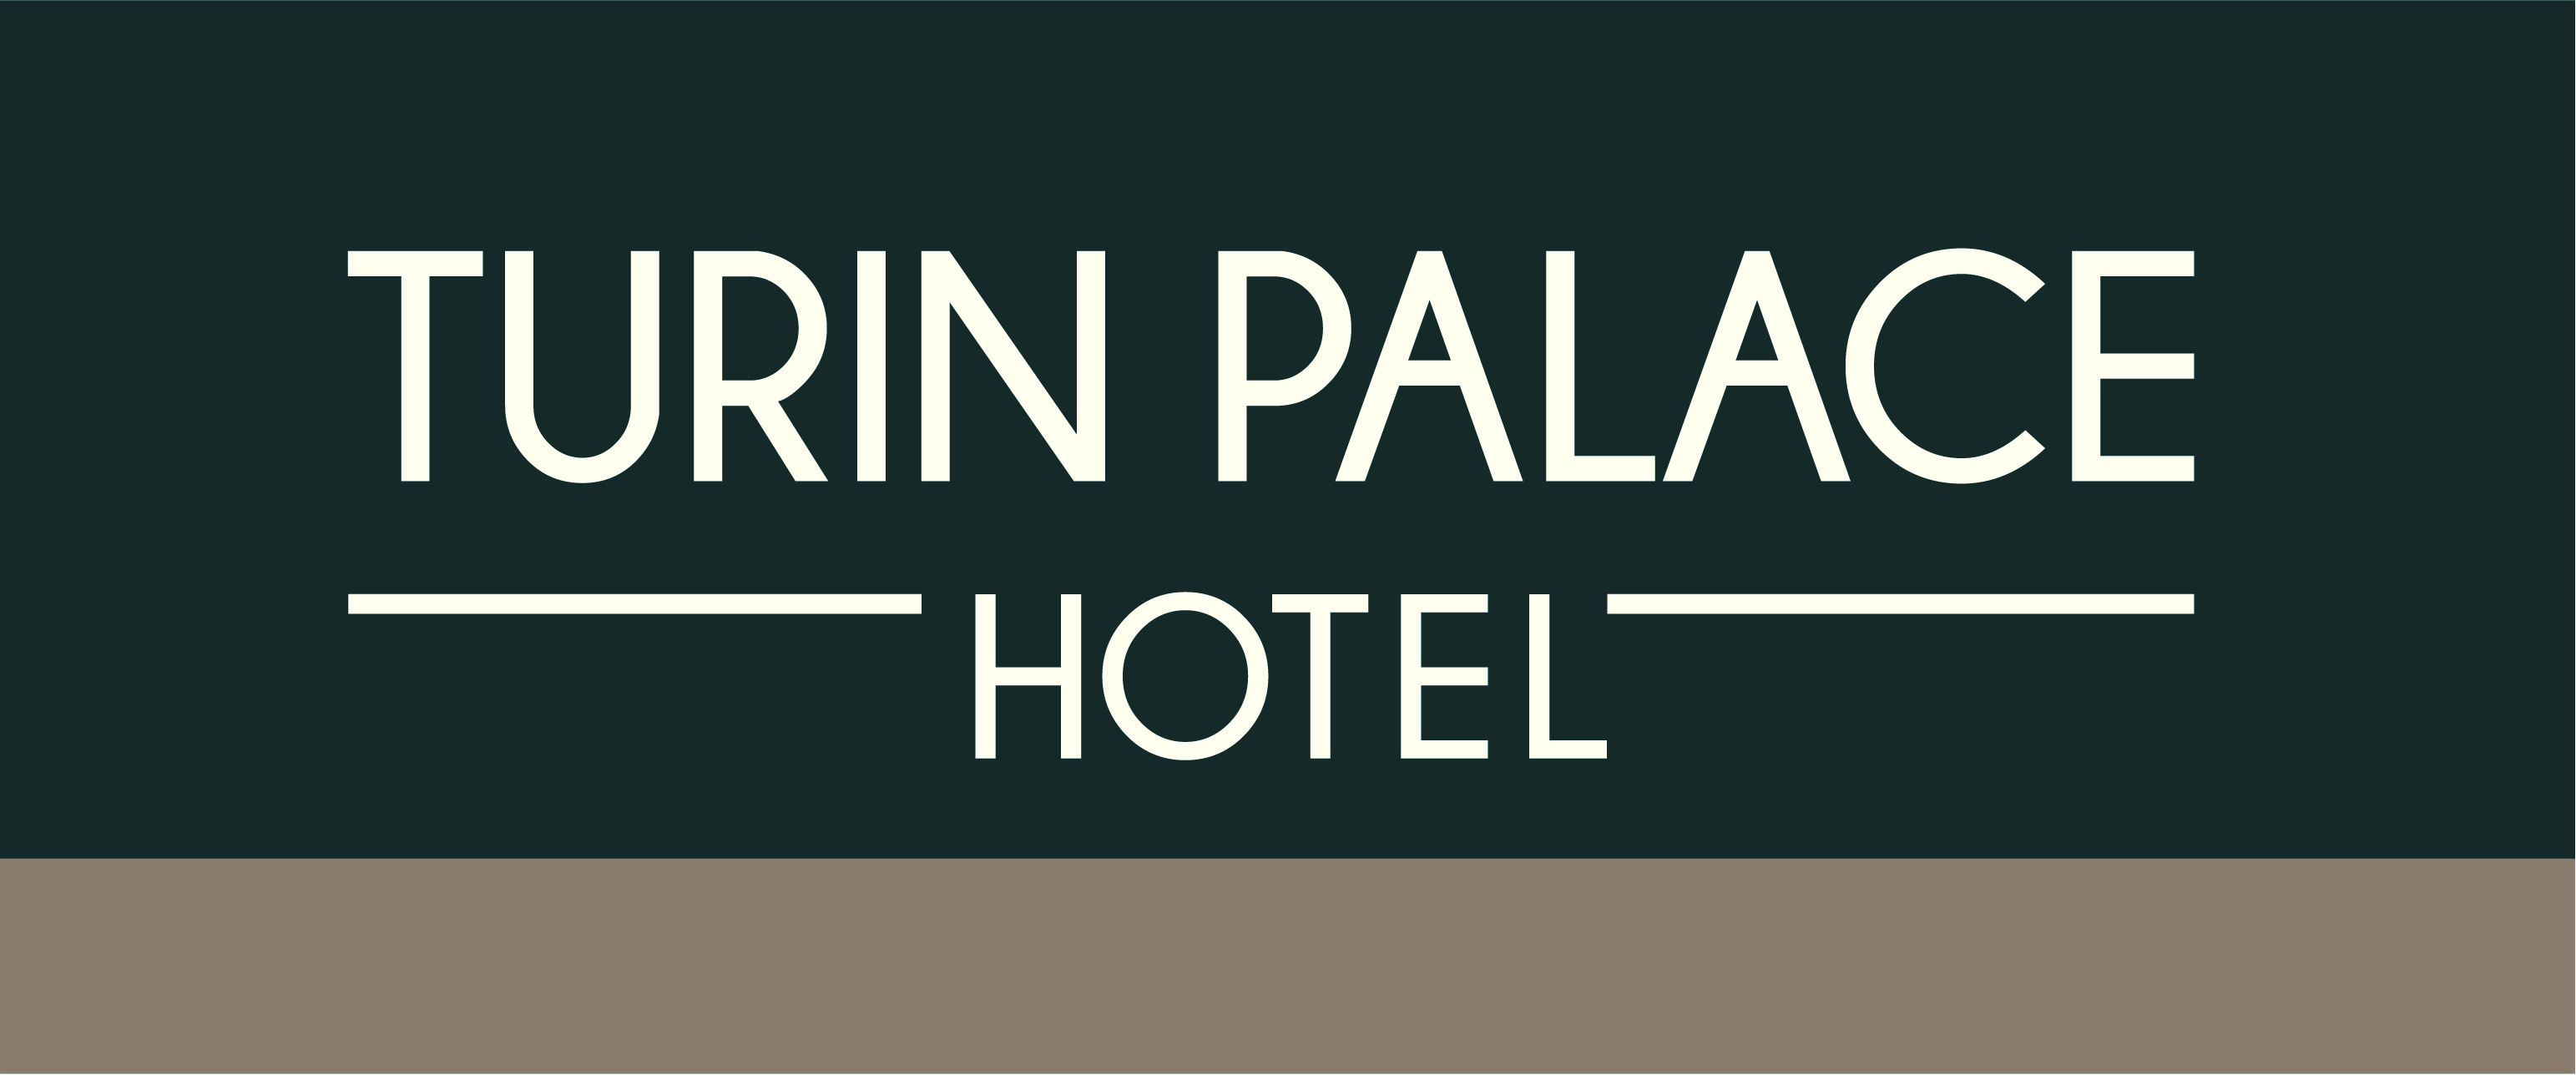 Turin palace hotel pink is good un progetto fondazione for Hotels turin